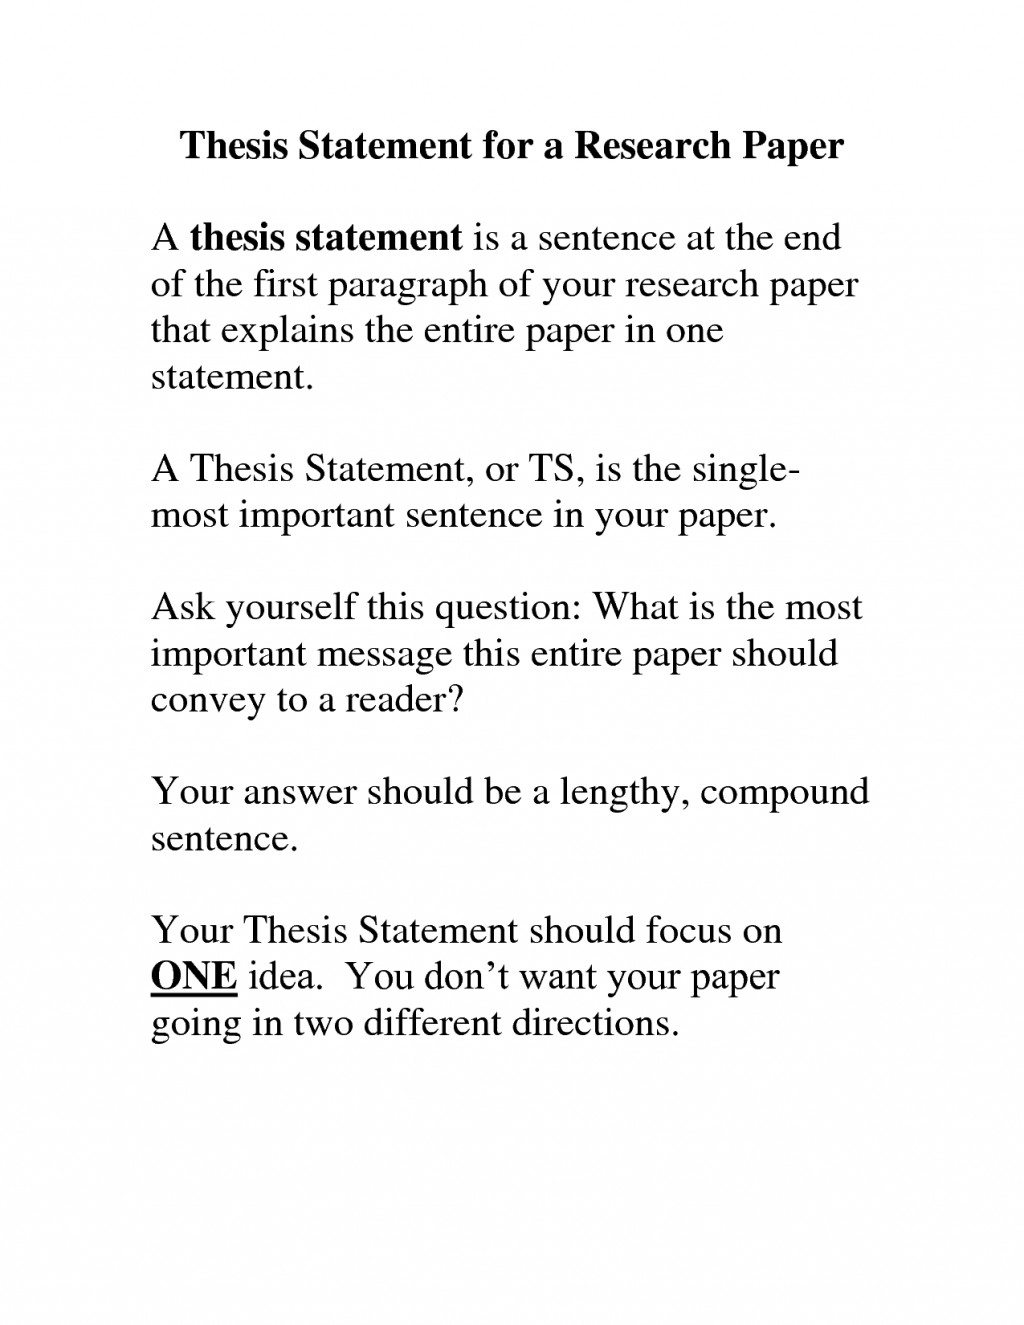 001 Argument Research Paper Thesis Statements Wondrous Argumentative Statement Examples Large